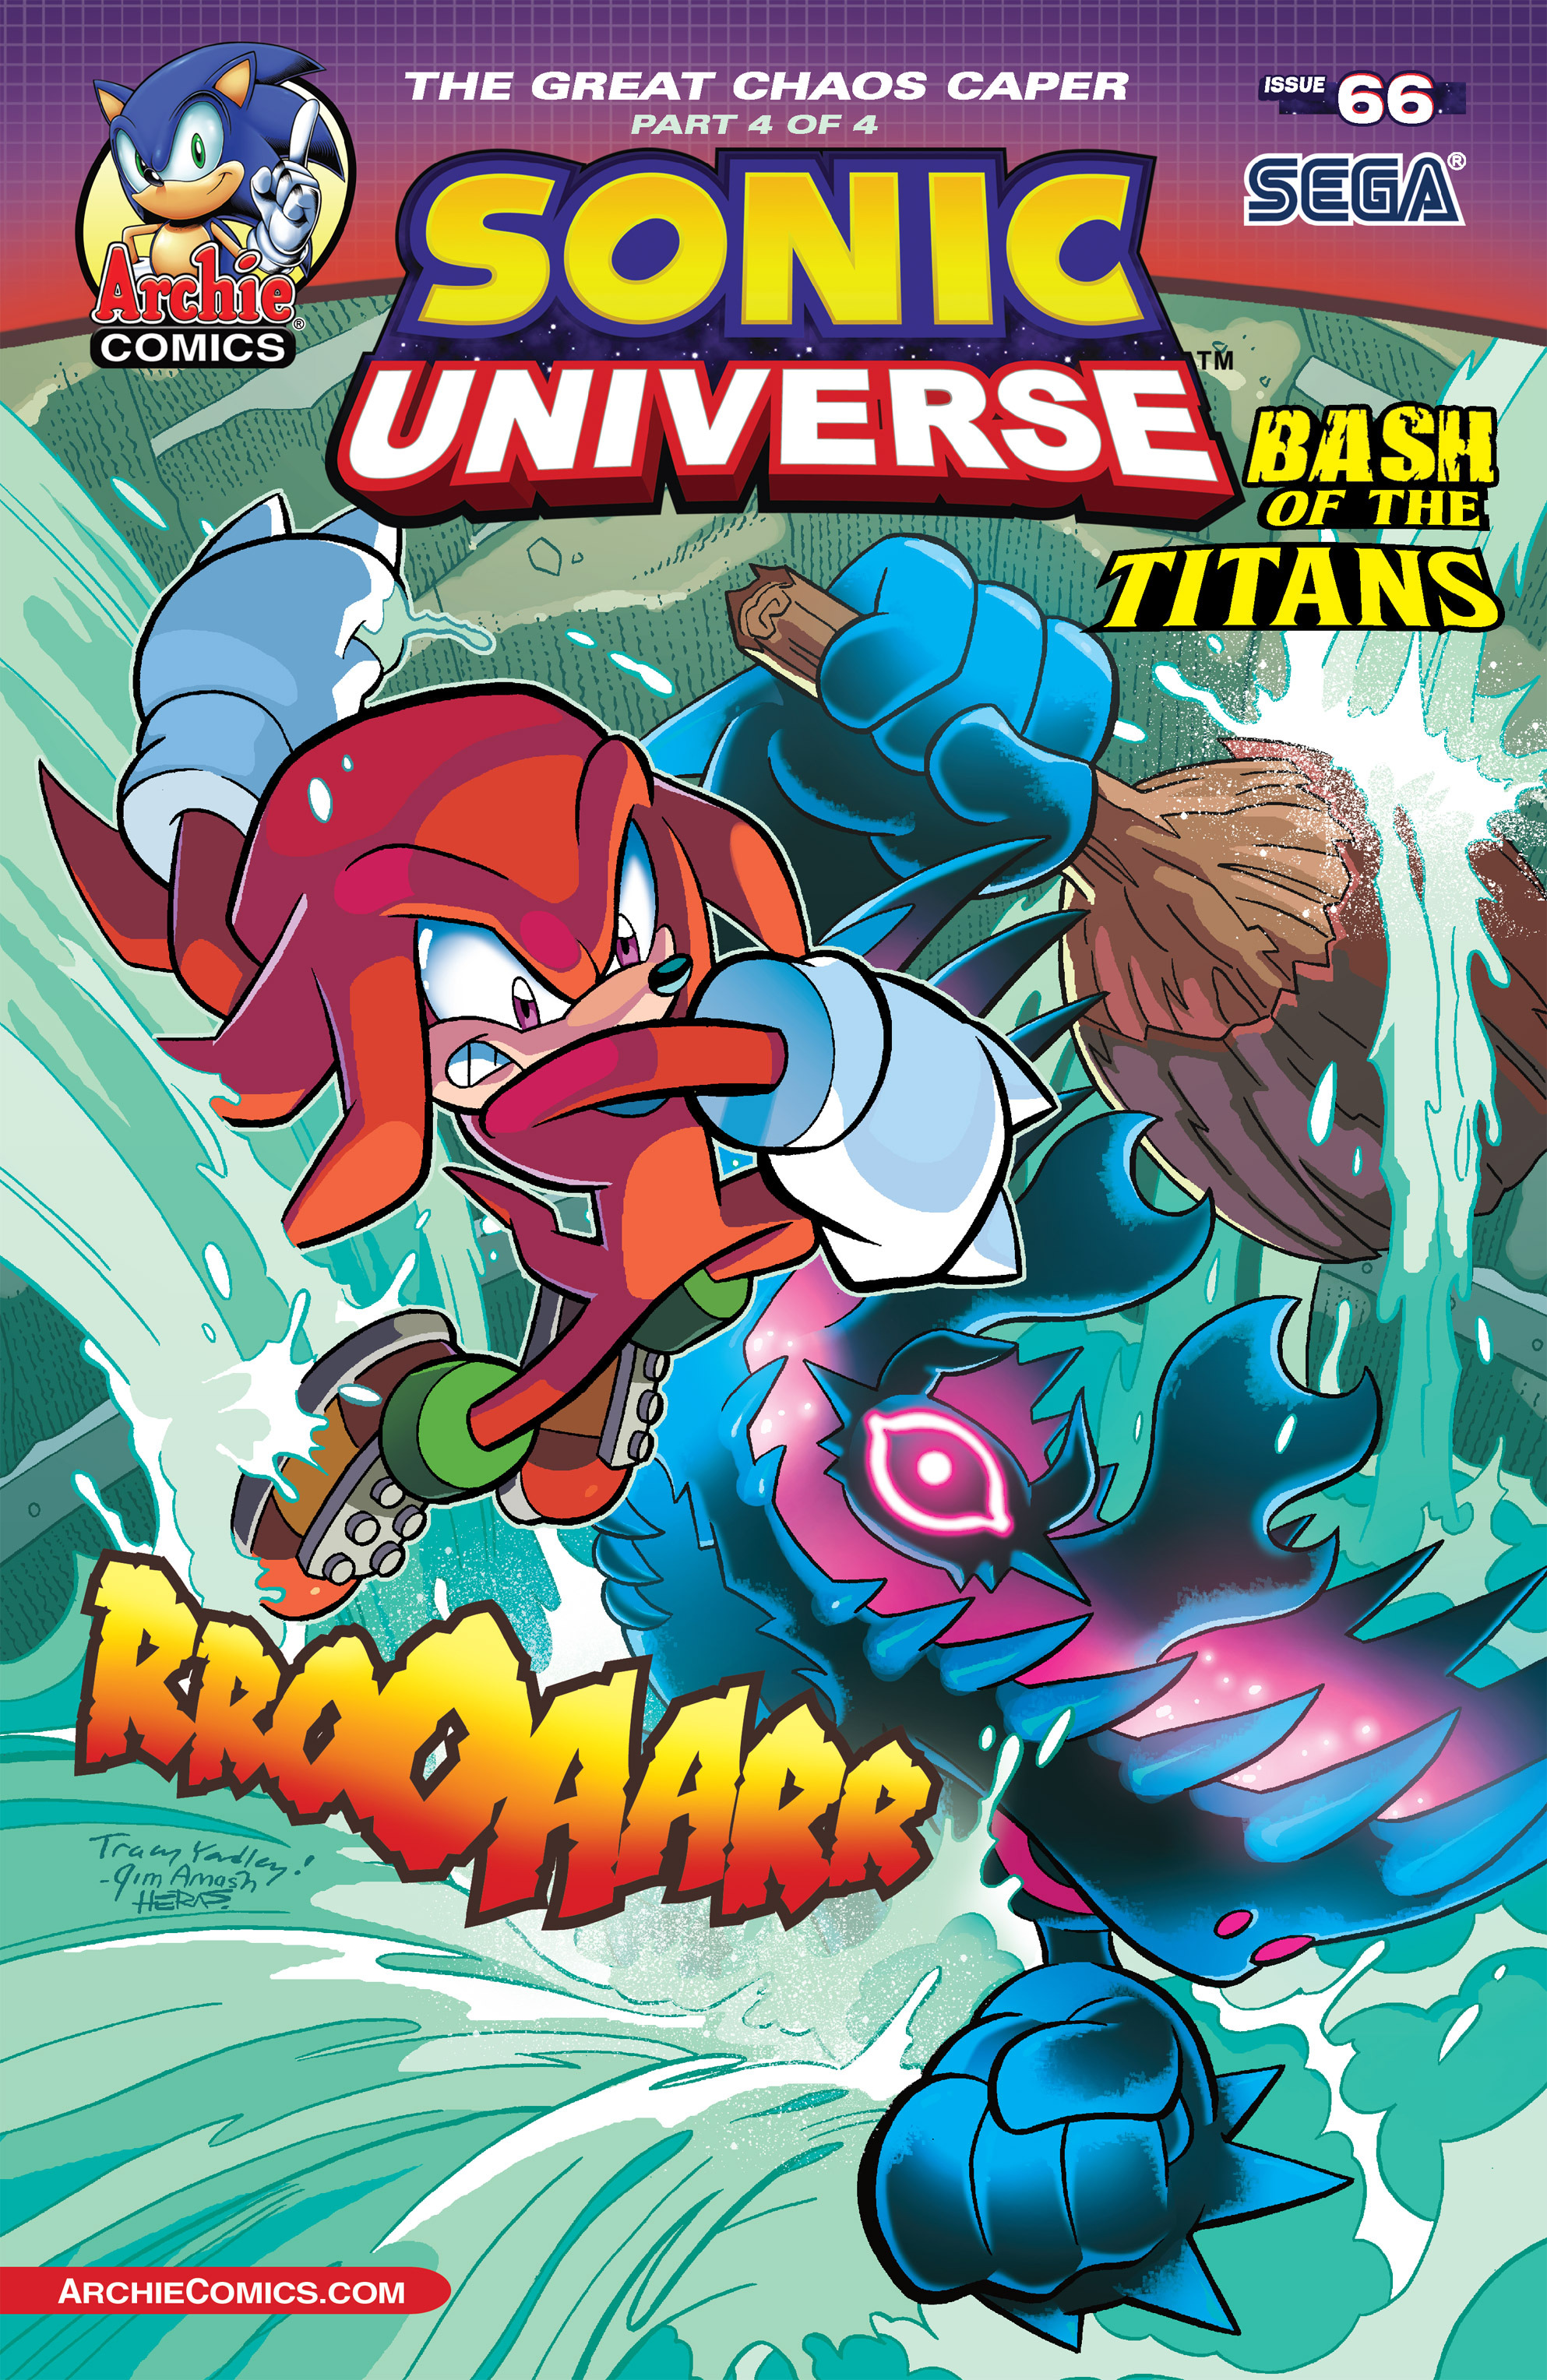 Read online Sonic Universe comic -  Issue #66 - 2